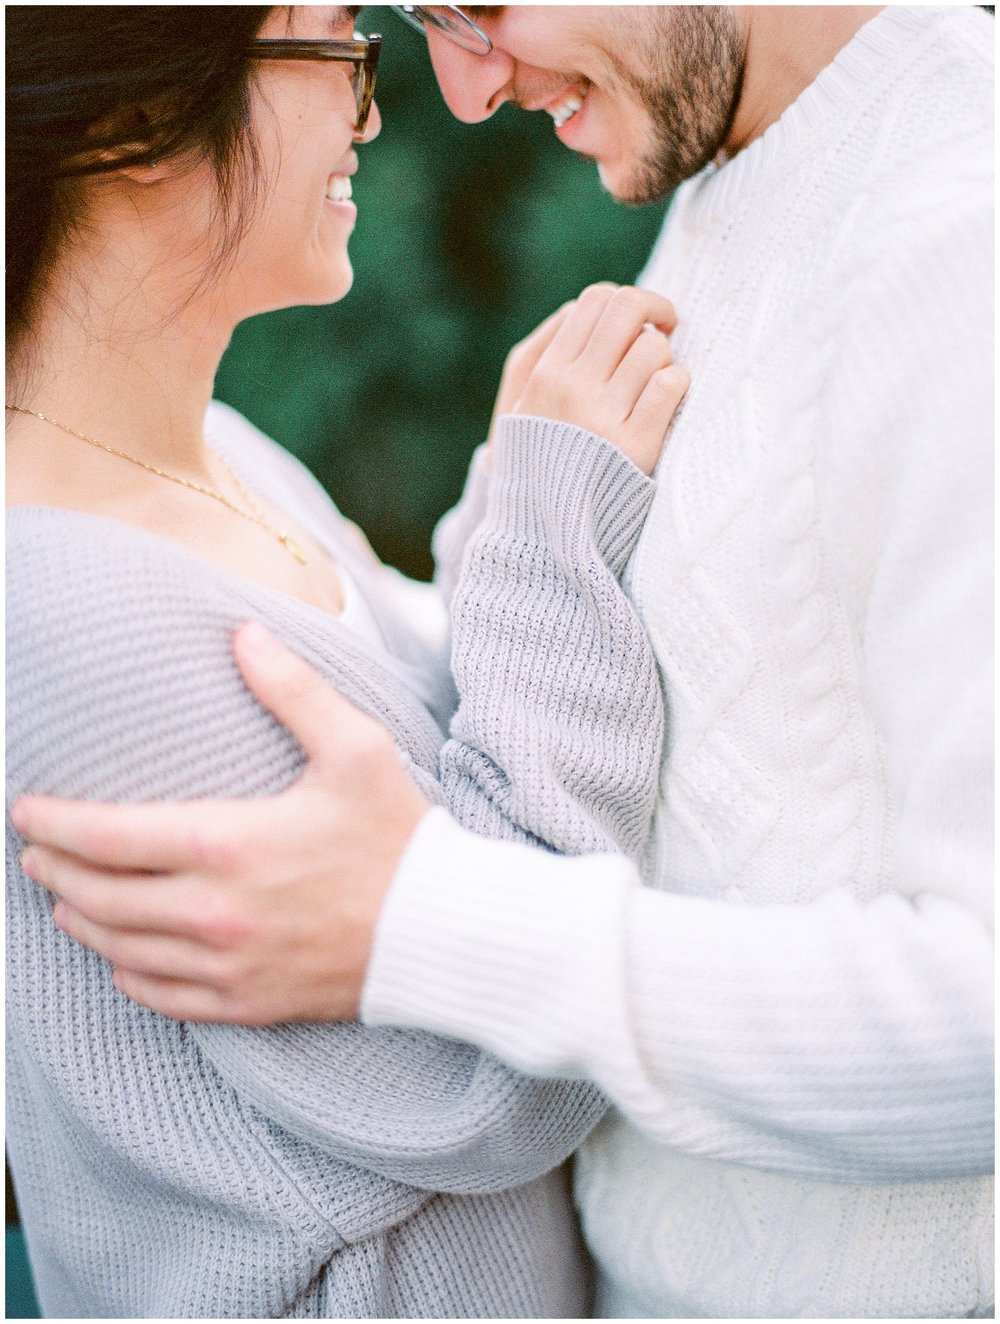 Mclean-VA-Wedding-Photos_Lifestyle-Engagement-Session_Jessica-Green-Photography-38.jpg